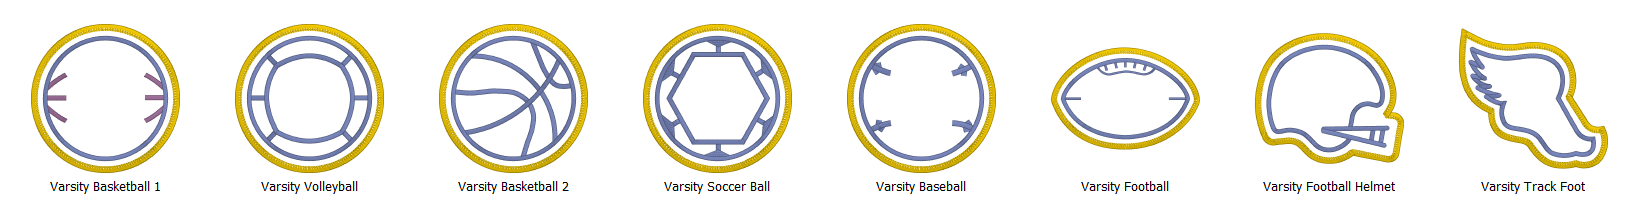 Merrowly Faux Merrow Stitch Patch Edge Embroidery Designs Scalable Examples of Varsity Sports for Embrilliance Software